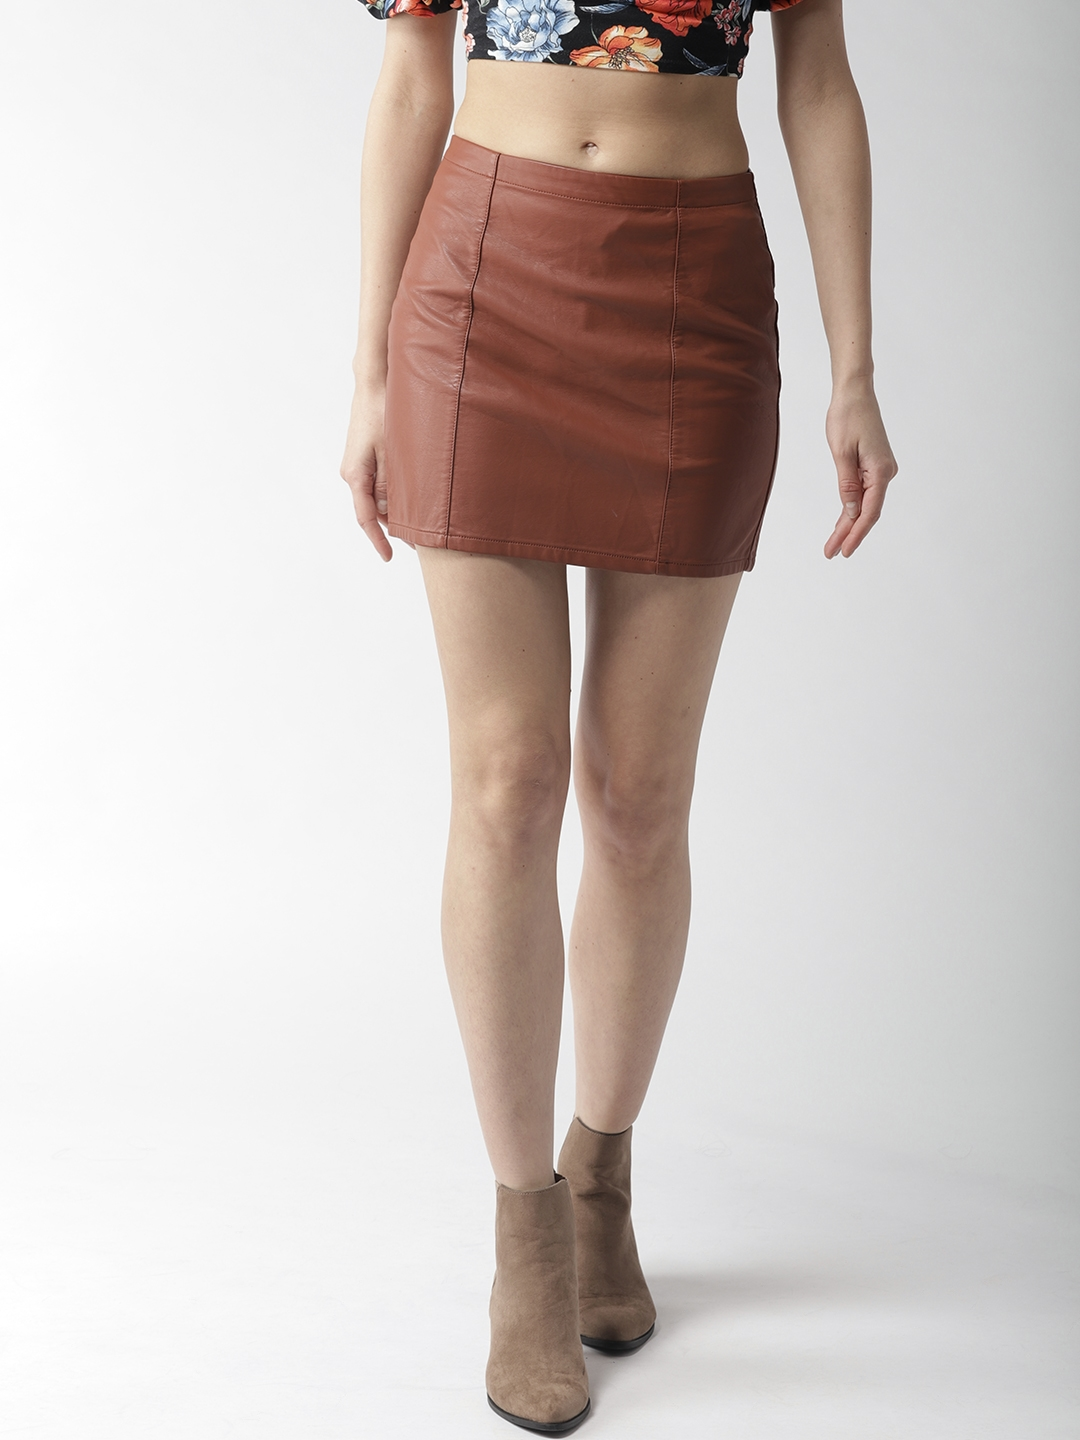 33aaa77d8 Buy FOREVER 21 Brown Faux Leather Mini Pencil Skirt - Skirts for ...